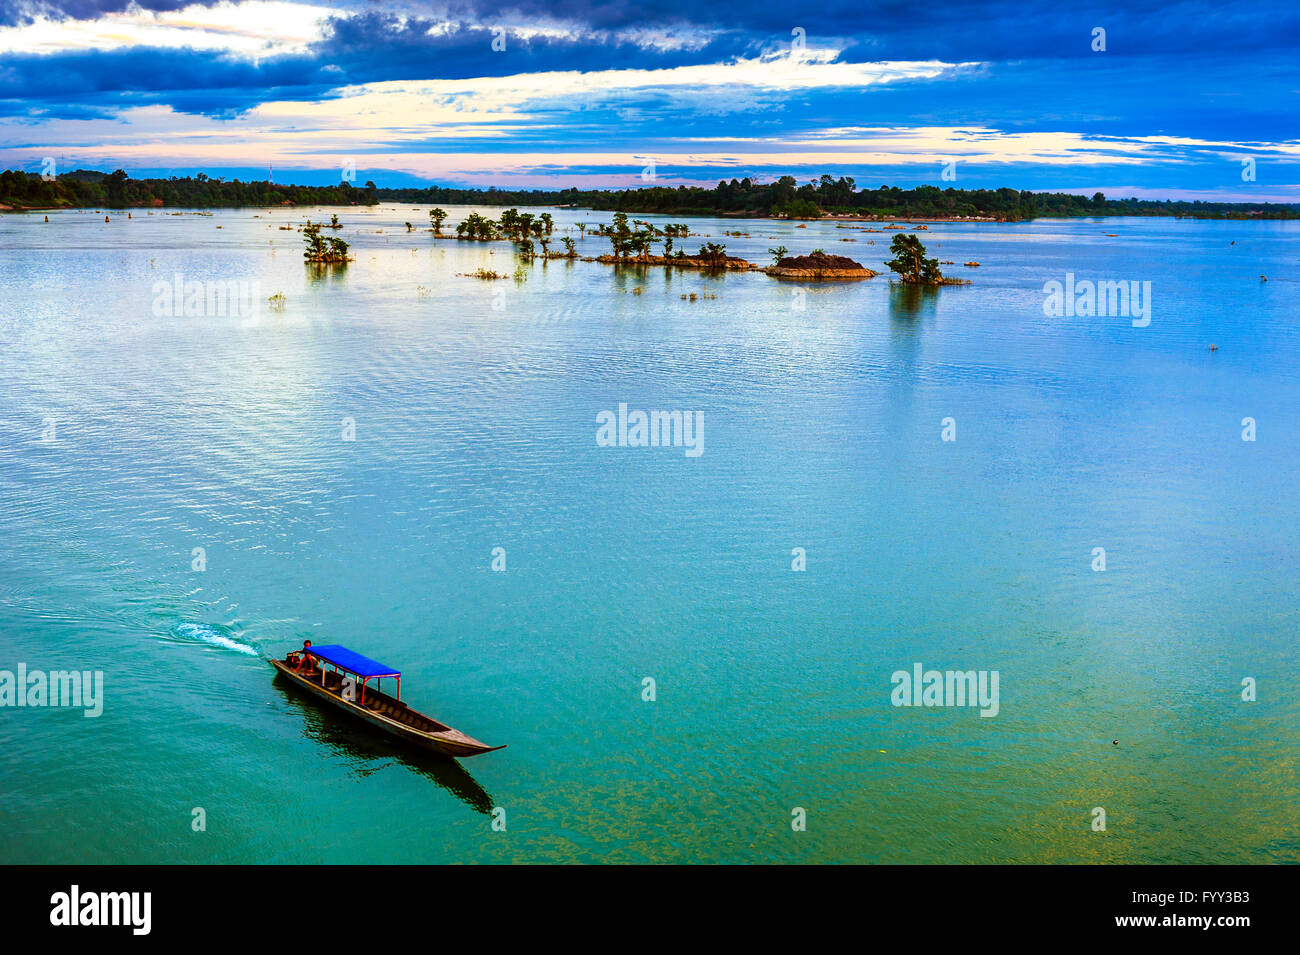 Asia. South-East Asia. Laos. Province of Champassak. 4000 islands. Don Khon island. The Mekong to the Cambodian - Stock Image